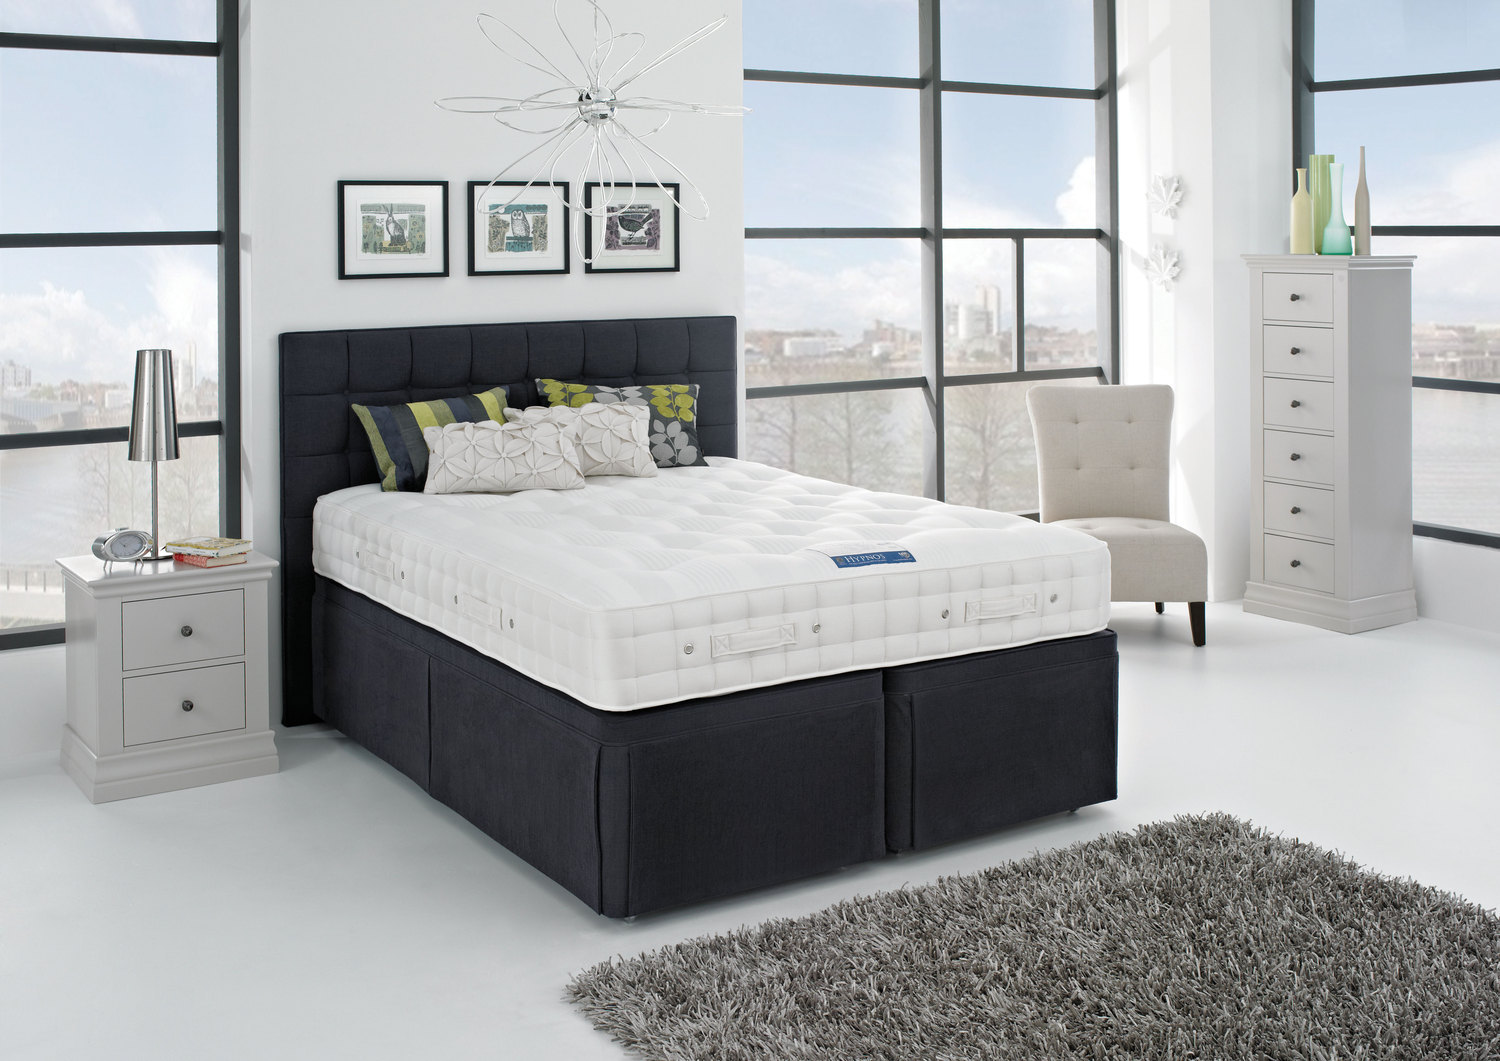 Hypnos orthocare 10 divan bed firm from for King size divan bed sale